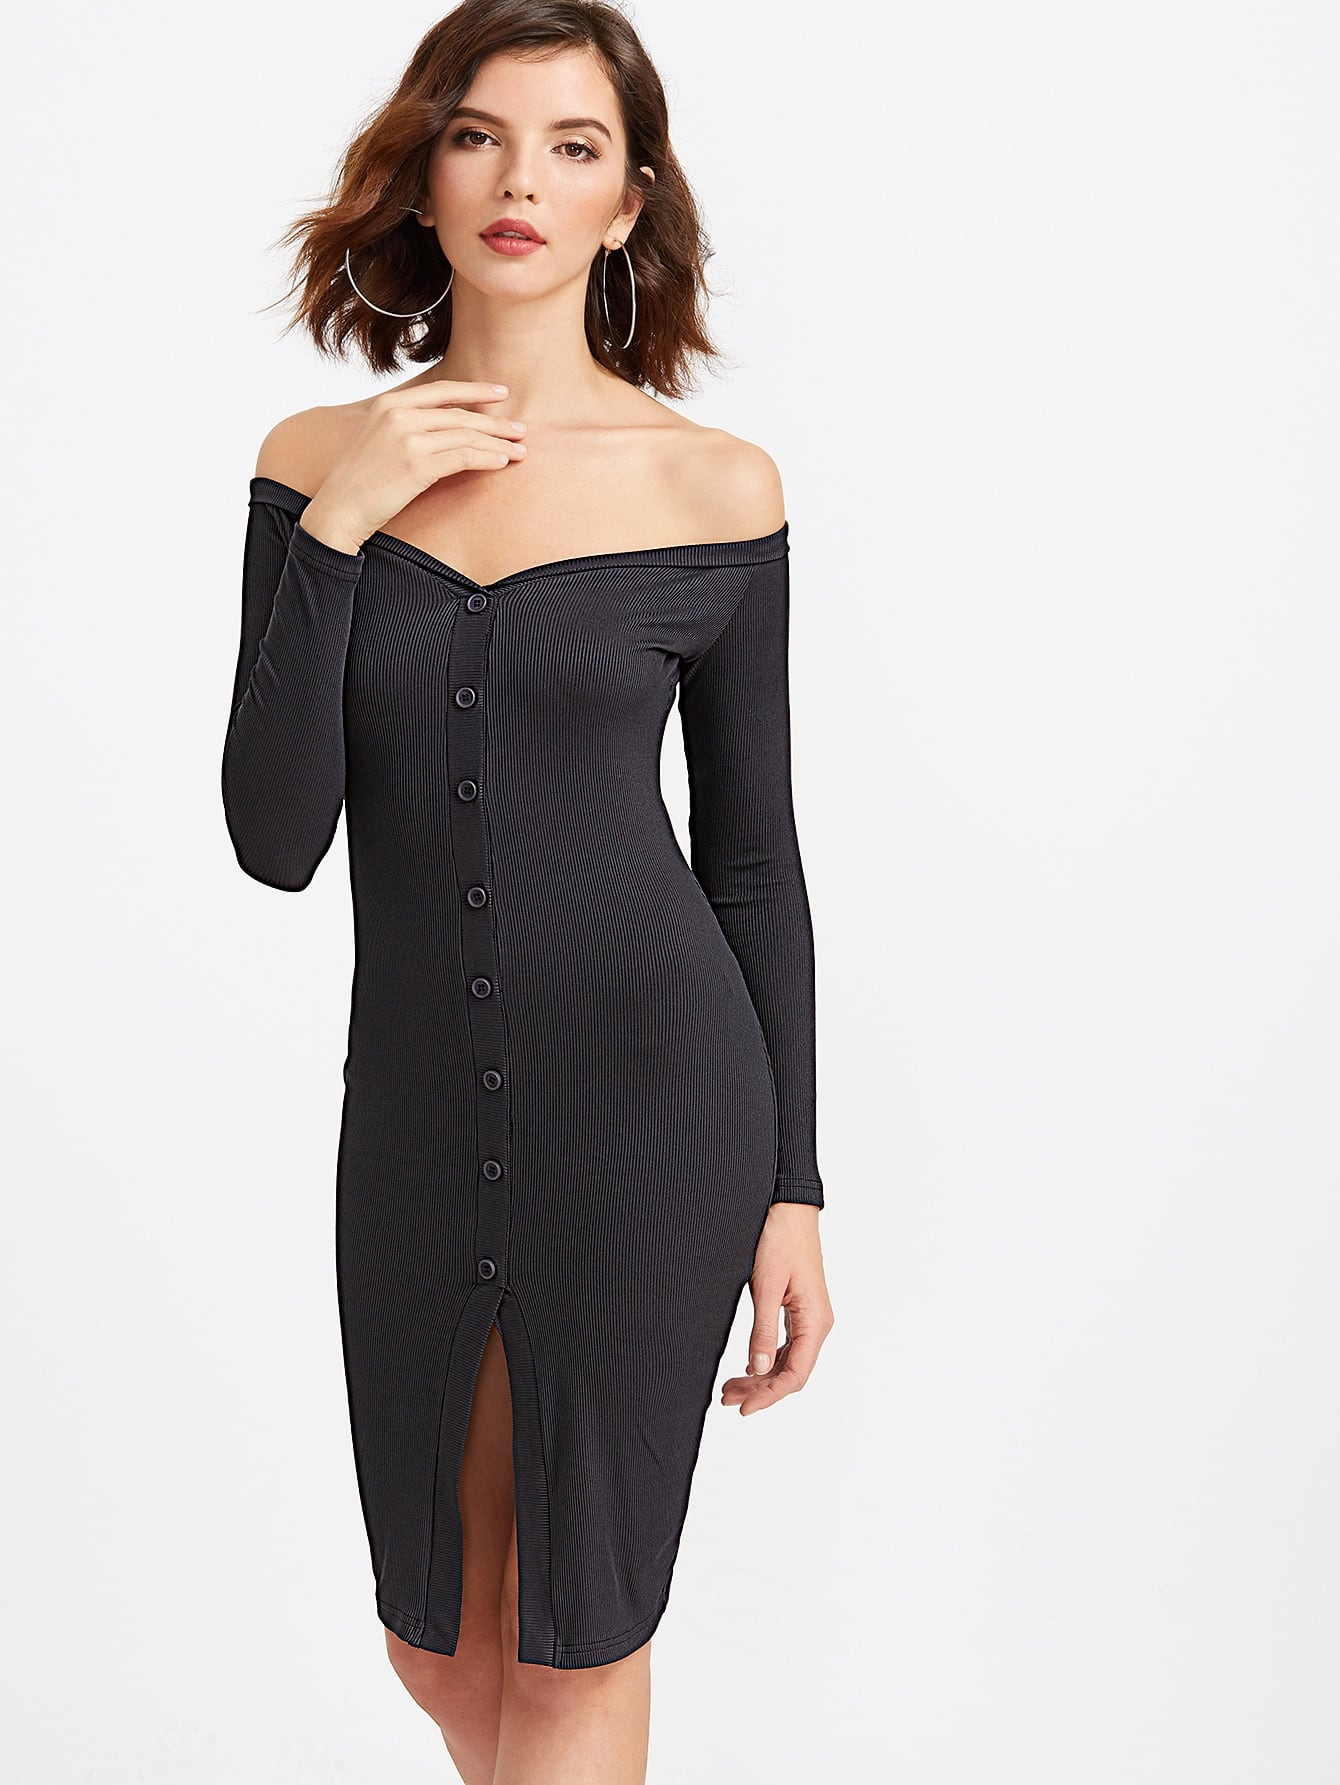 Bardot Neckline Button Front Ribbed Bodycon Dress dress170227702